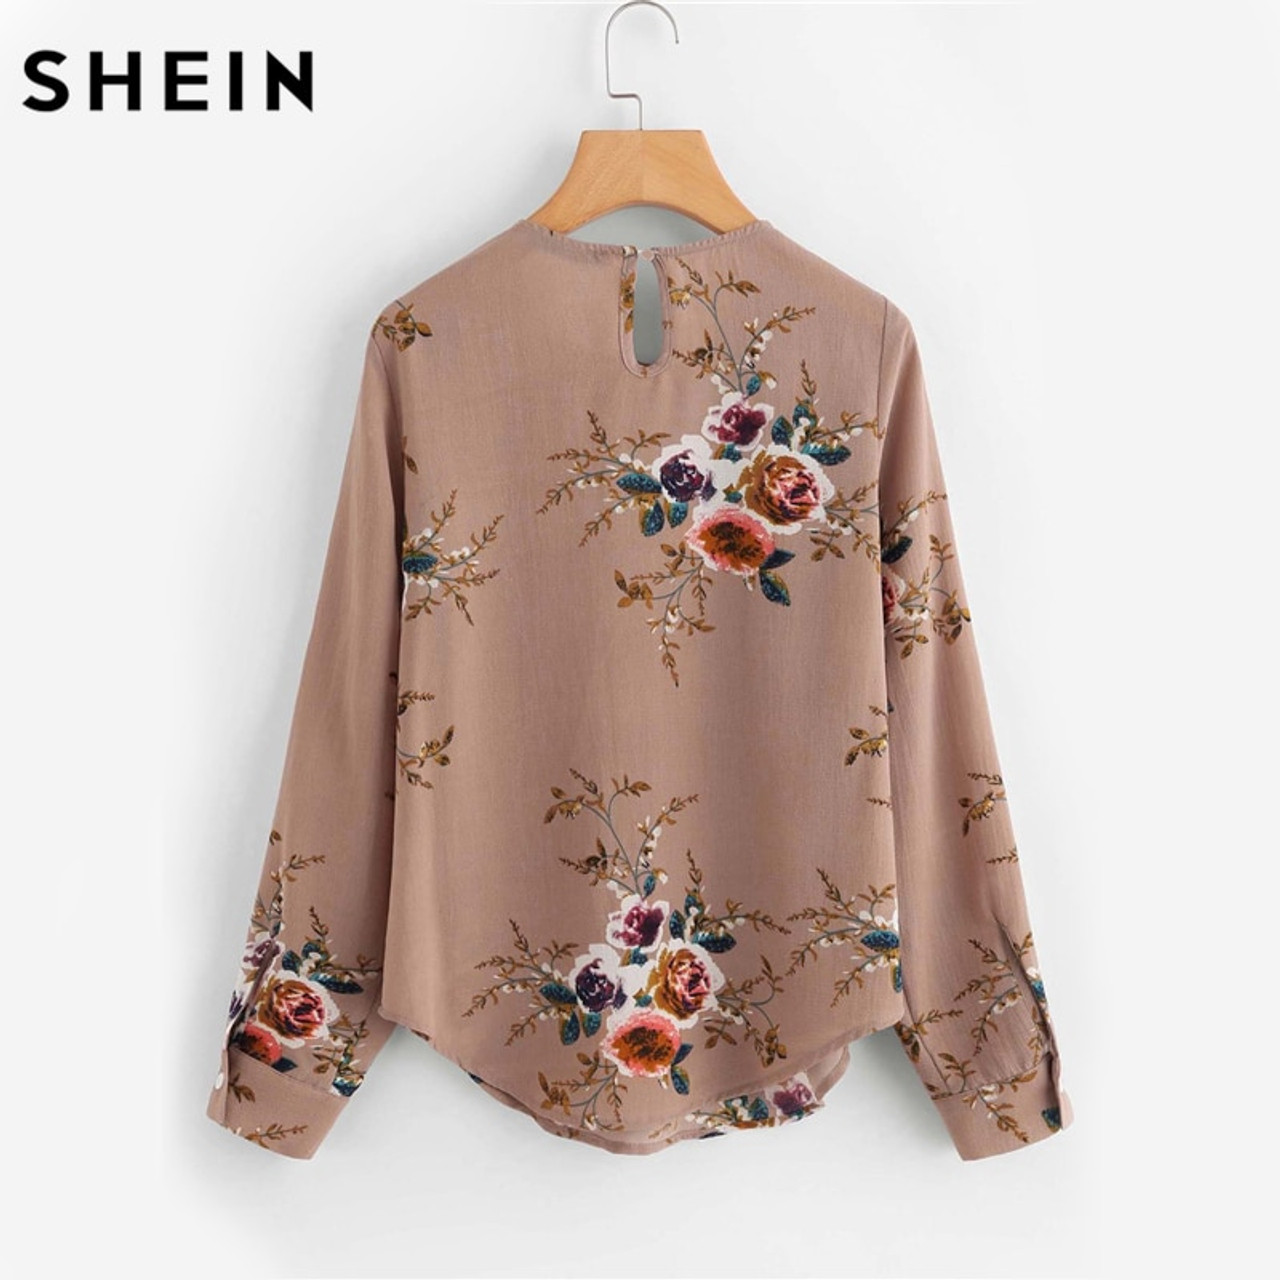 b76eabd2c1bac0 ... SHEIN Flower Print Keyhole Back Curved Hem Blouse Autumn Women Blouses  Long Sleeve Multicolor Floral Work ...